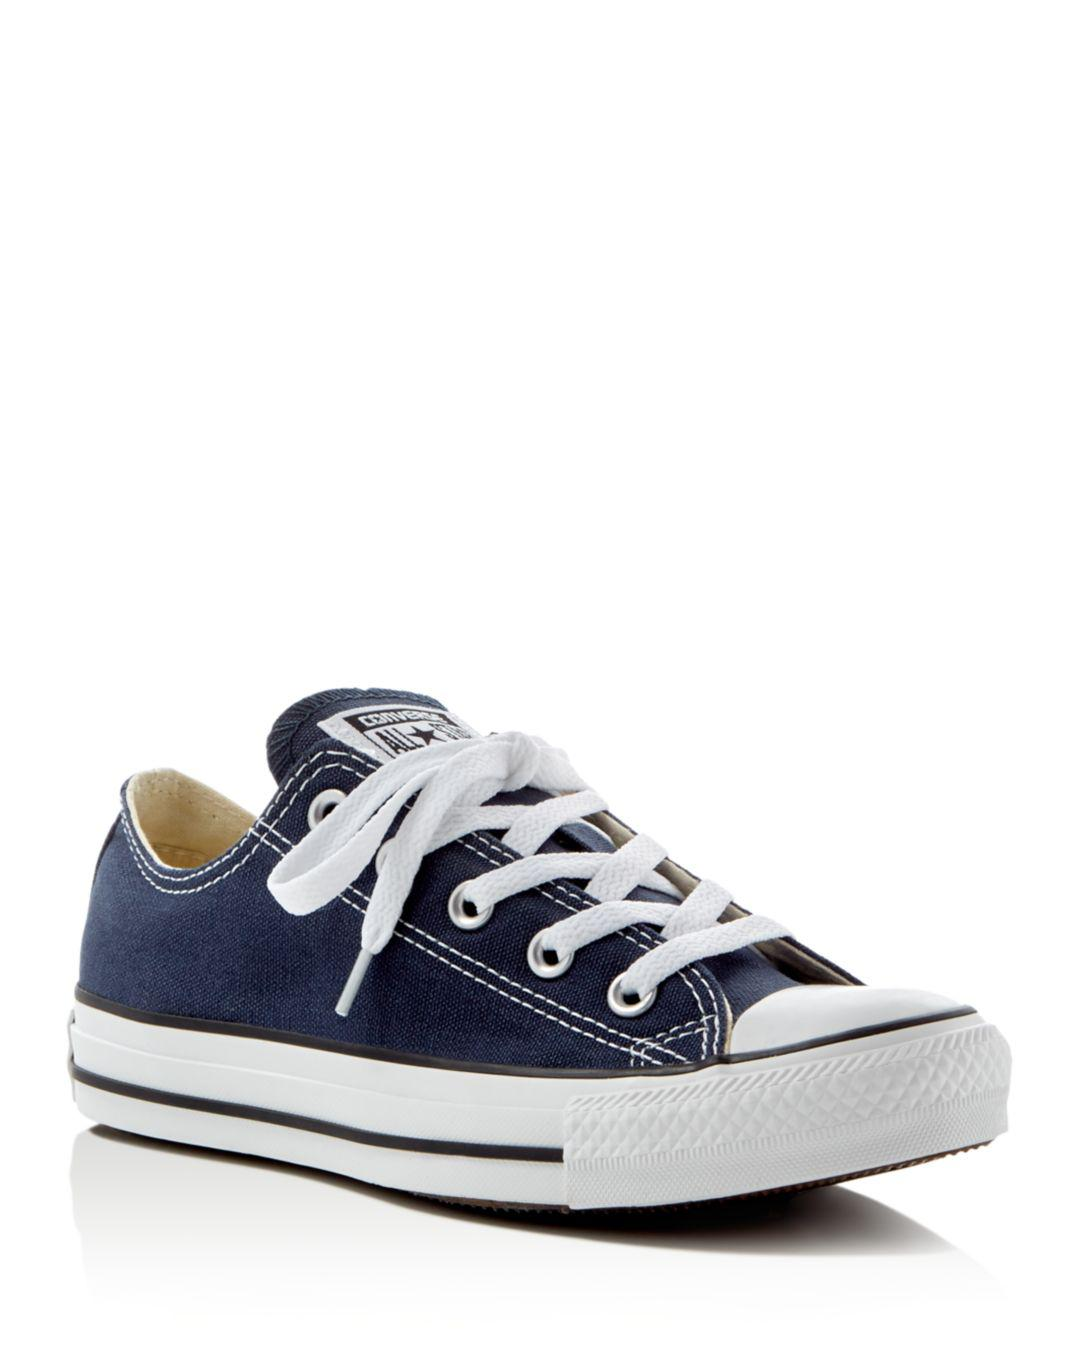 Lyst - Converse Women s Chuck Taylor All Star Lace Up Sneakers in Blue dd5252120